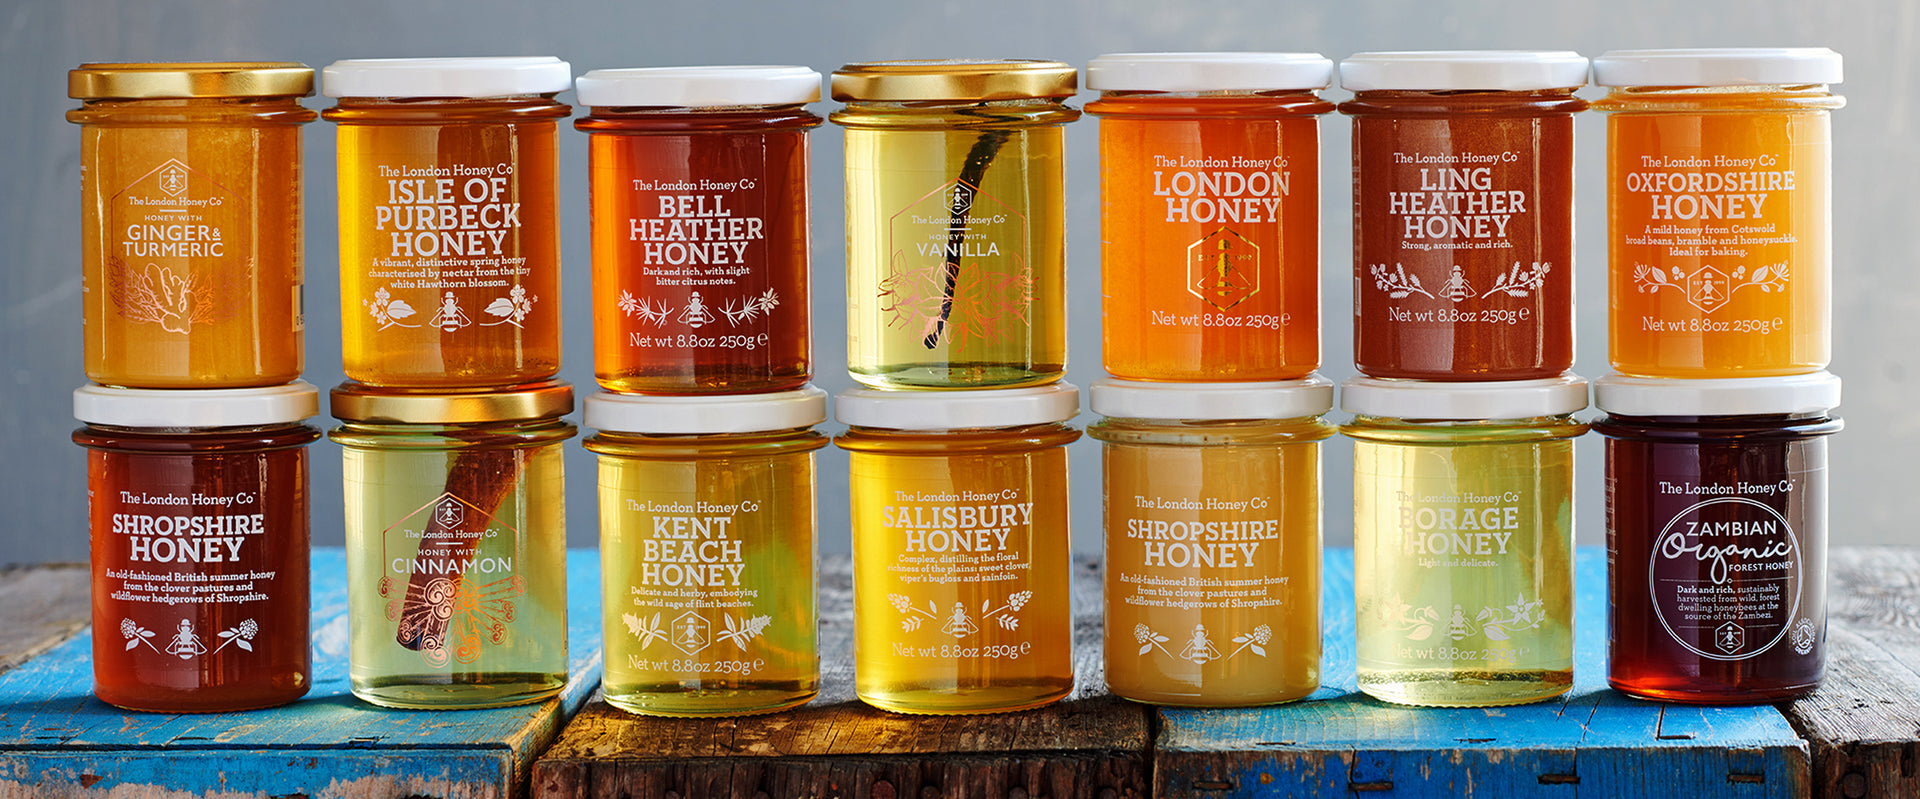 Ten jars of London Honey